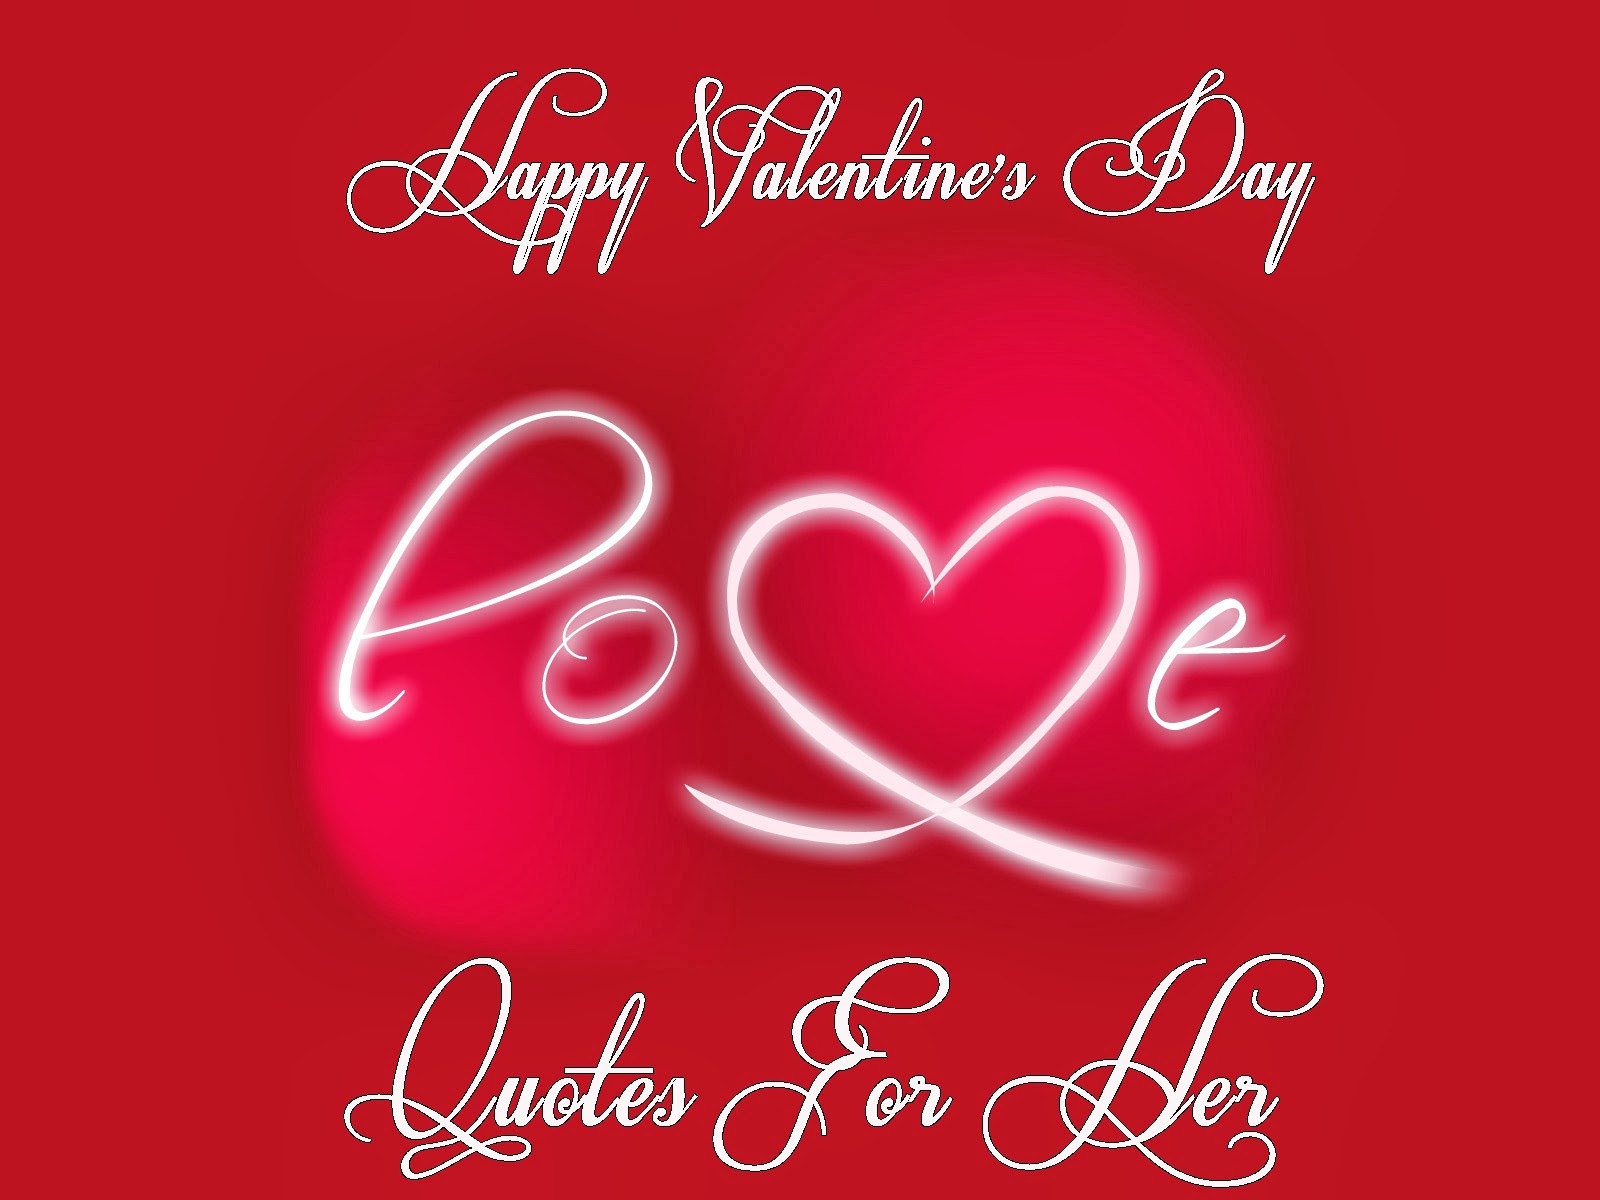 Valentines day quotes for her quotesgram for Quotes on valentine day